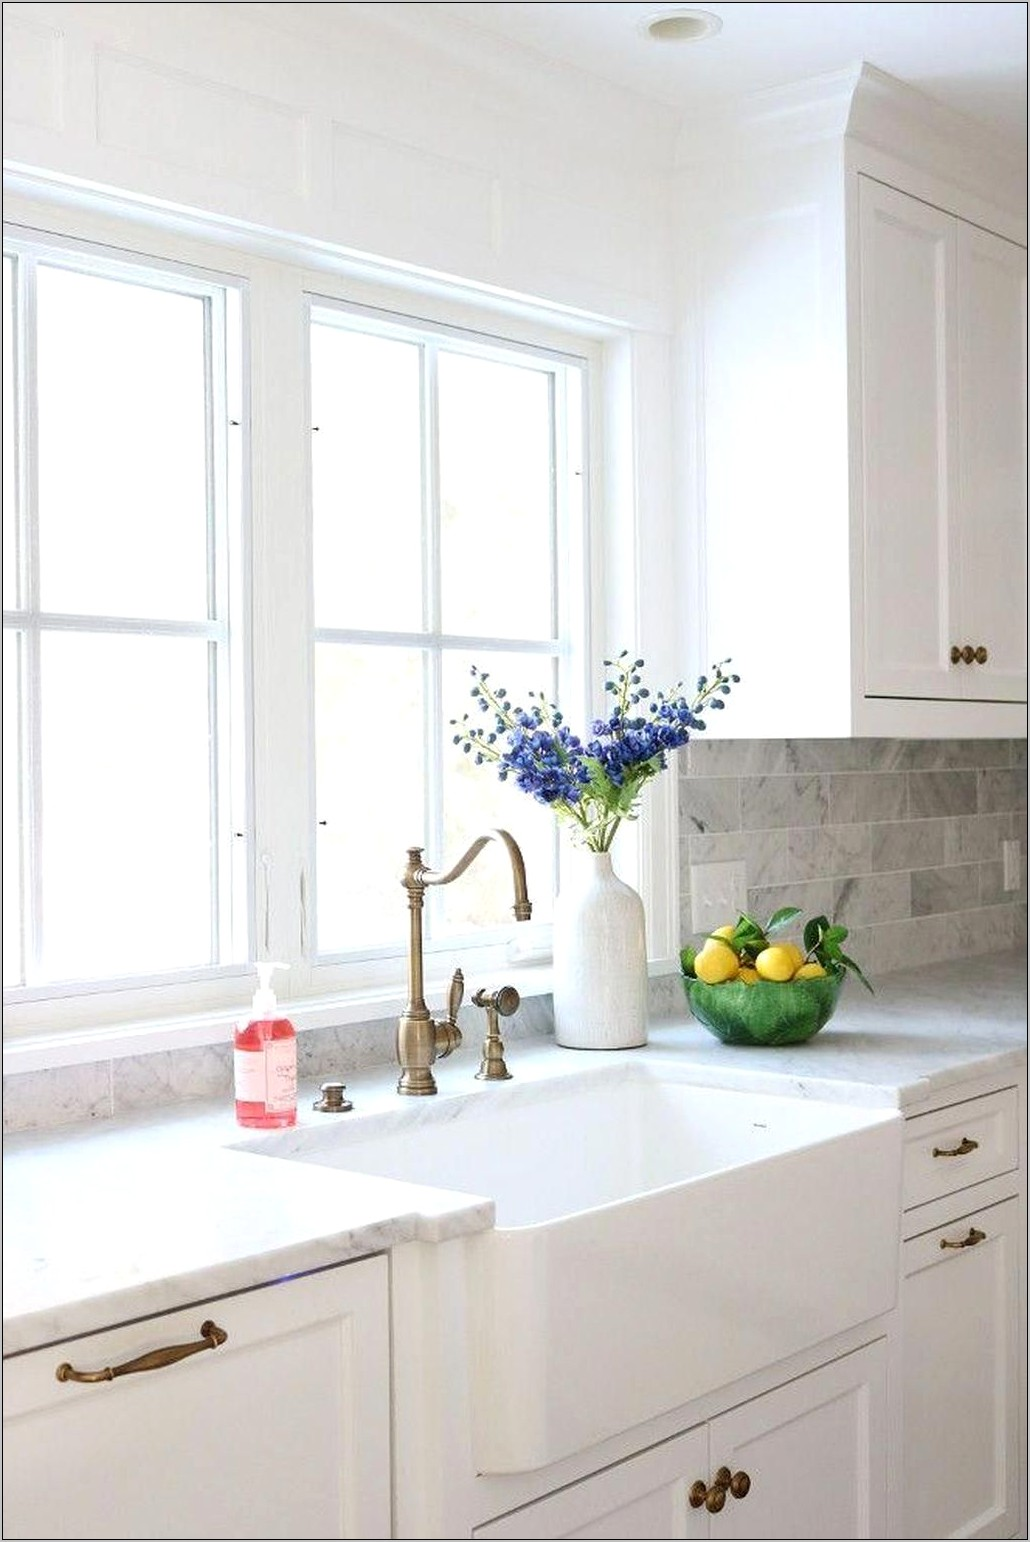 Kitchen Sink Wall Decor